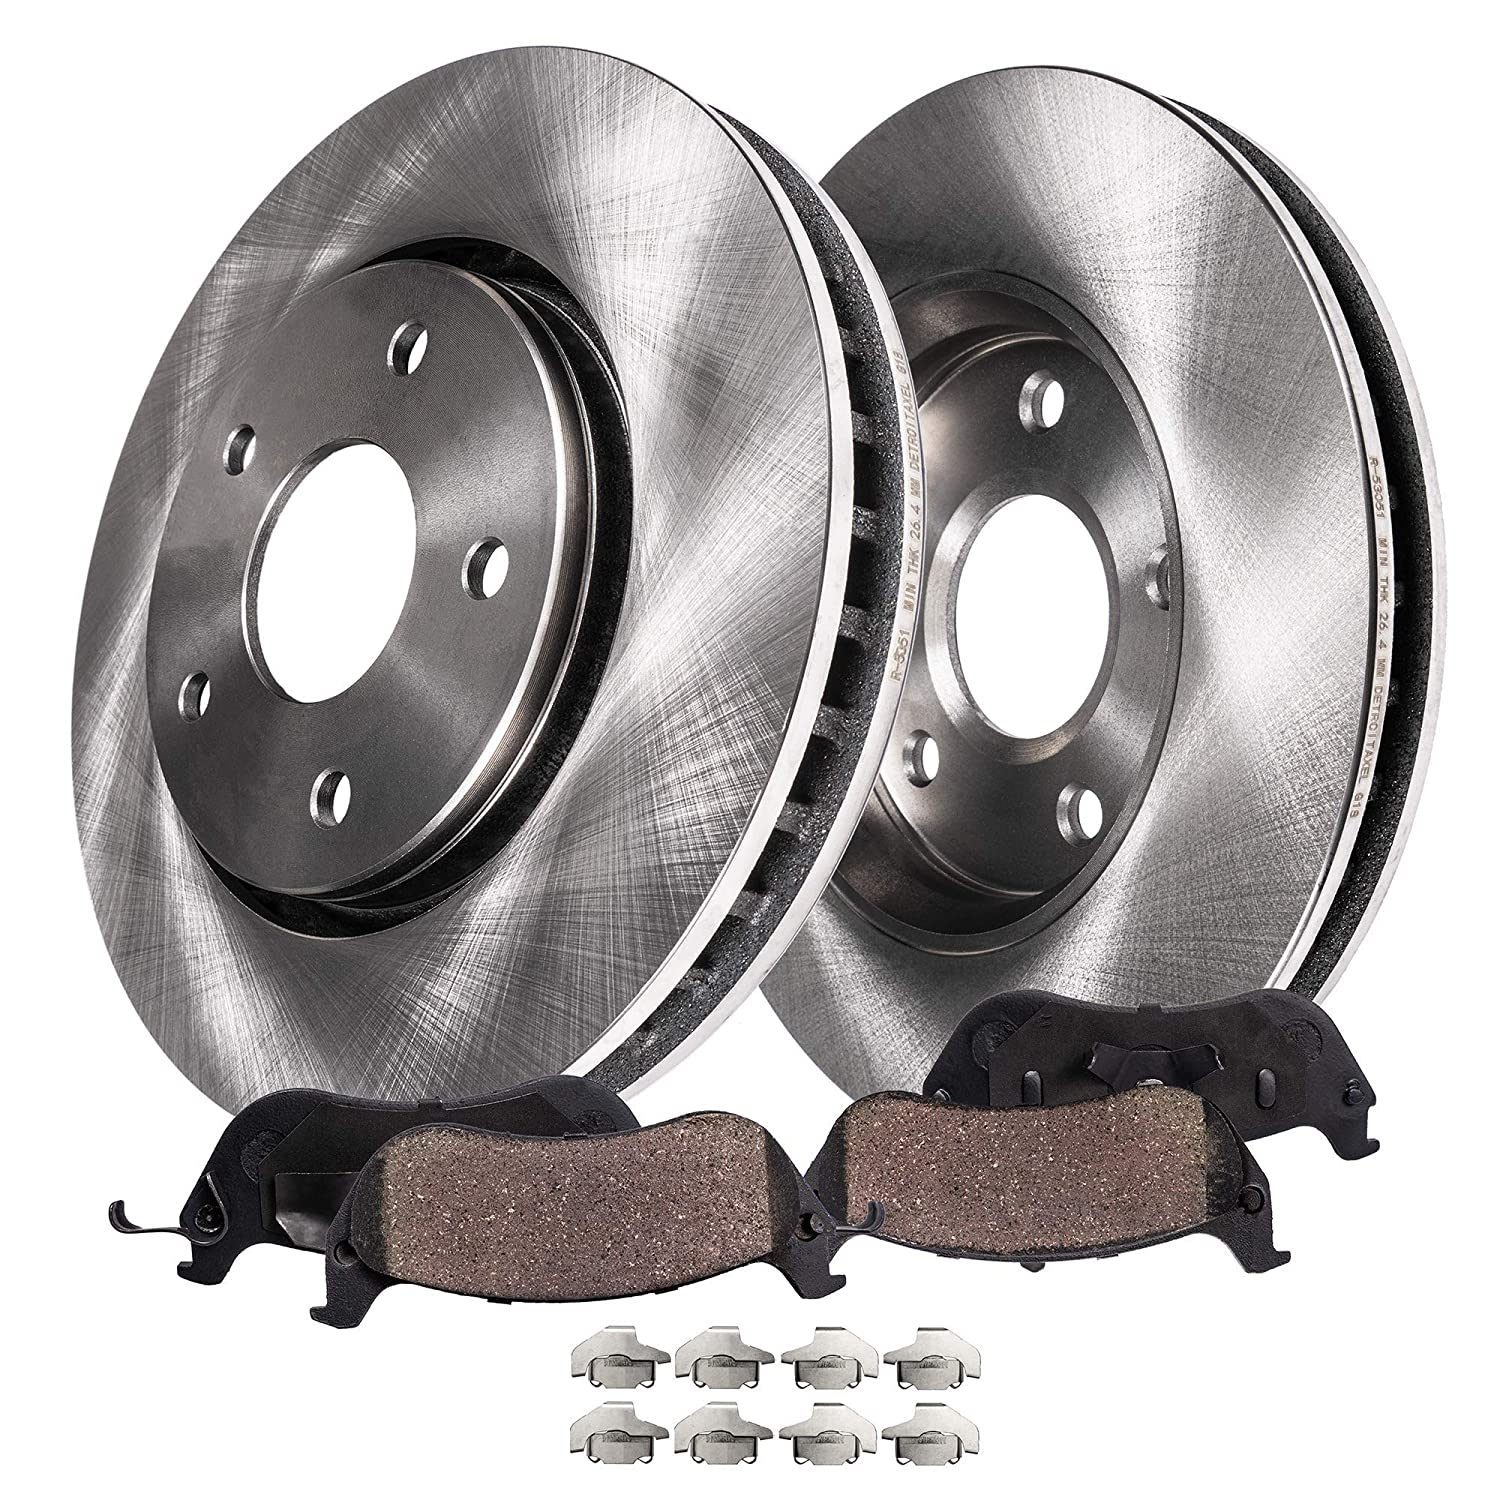 Detroit Axle Front Brake Rotors /& Ceramic Pads w//Clips Hardware Kit Premium GRADE for 2007 2008 2009 Hyundai Santa Fe